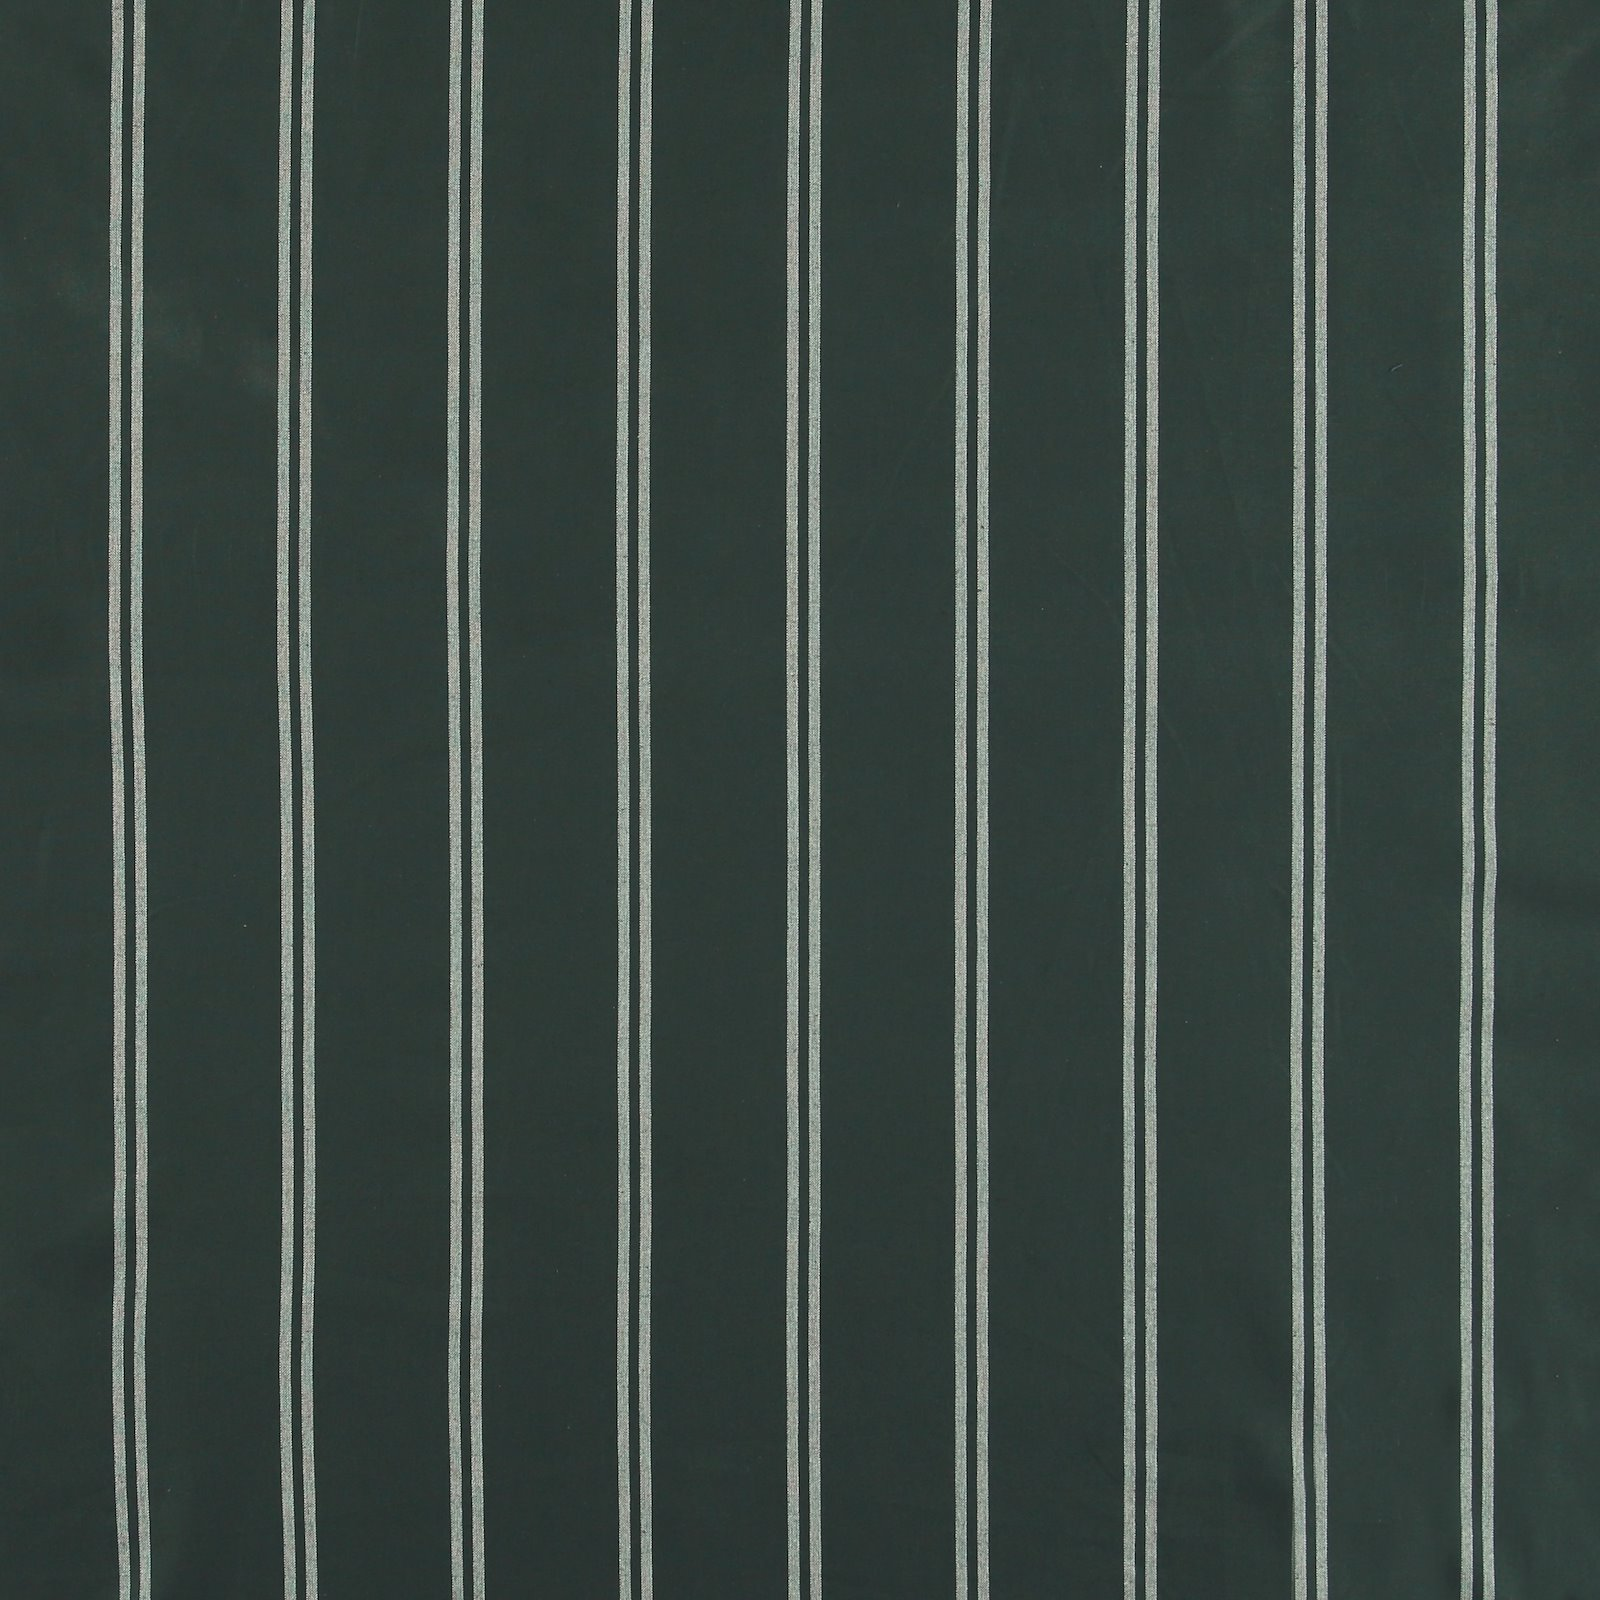 Woven yarn dyed black/off white stripe 816256_pack_sp